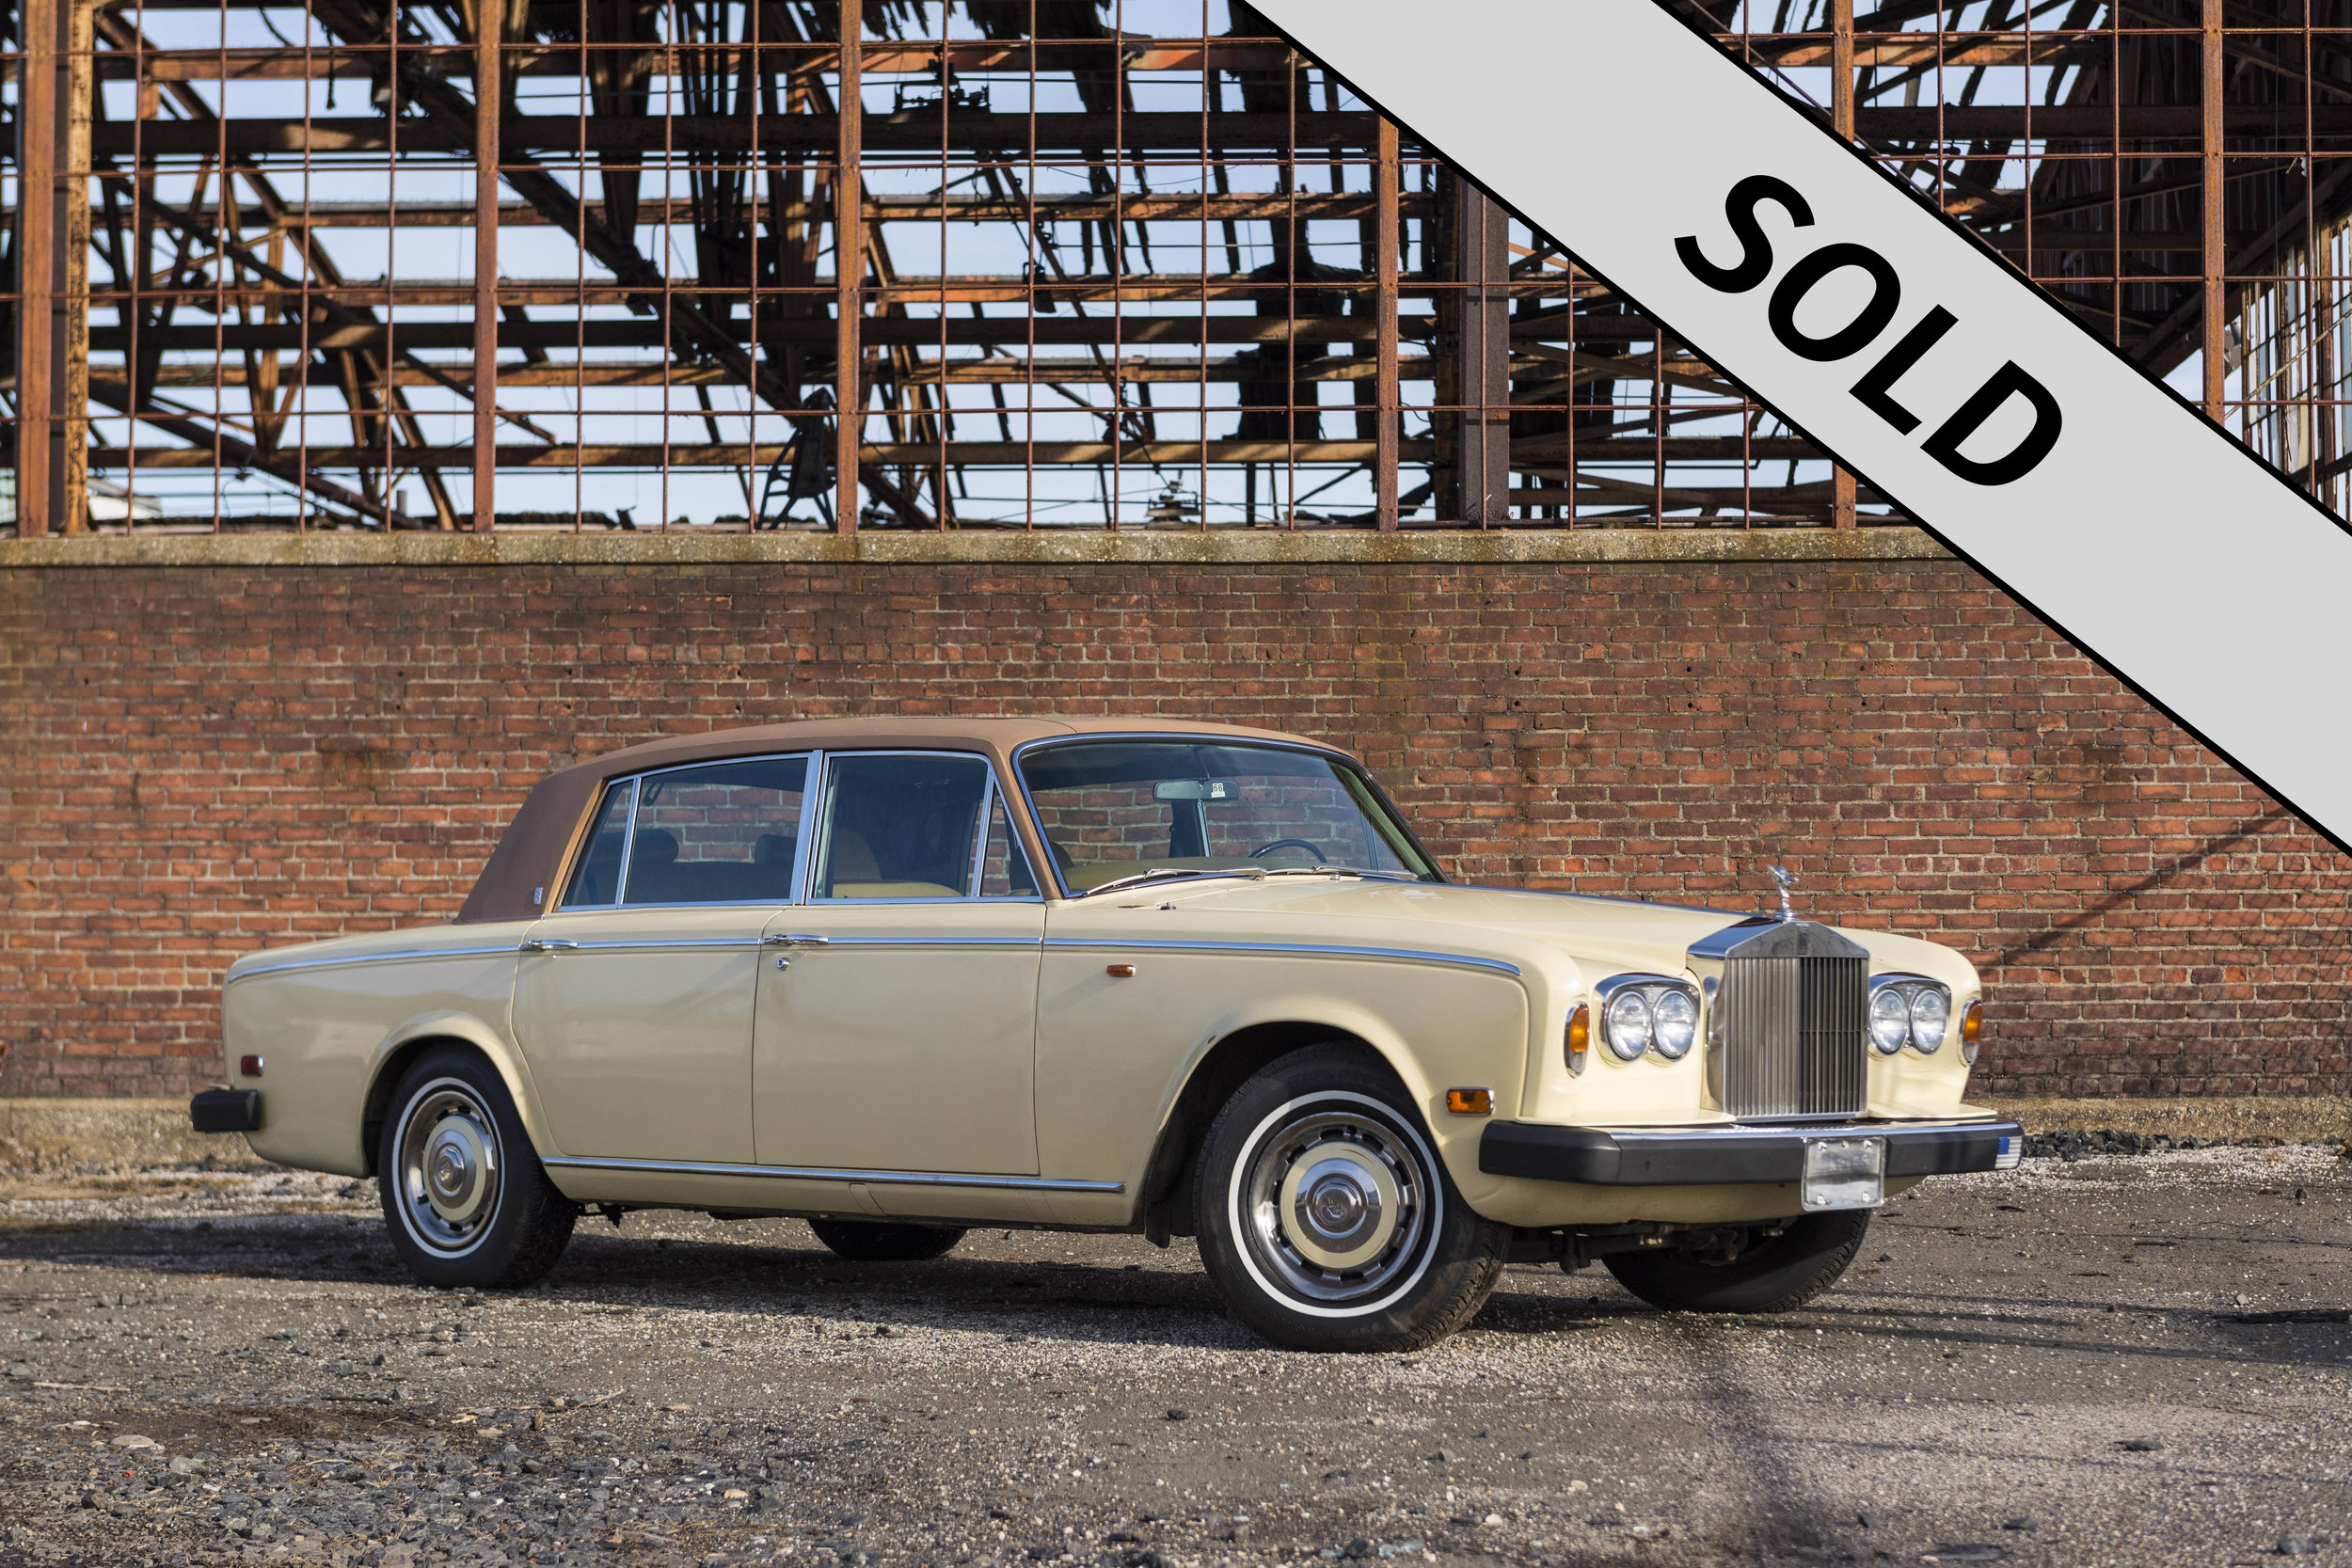 1976 Rolls Royce Silver Shadow LWB Shop SOLD.jpg